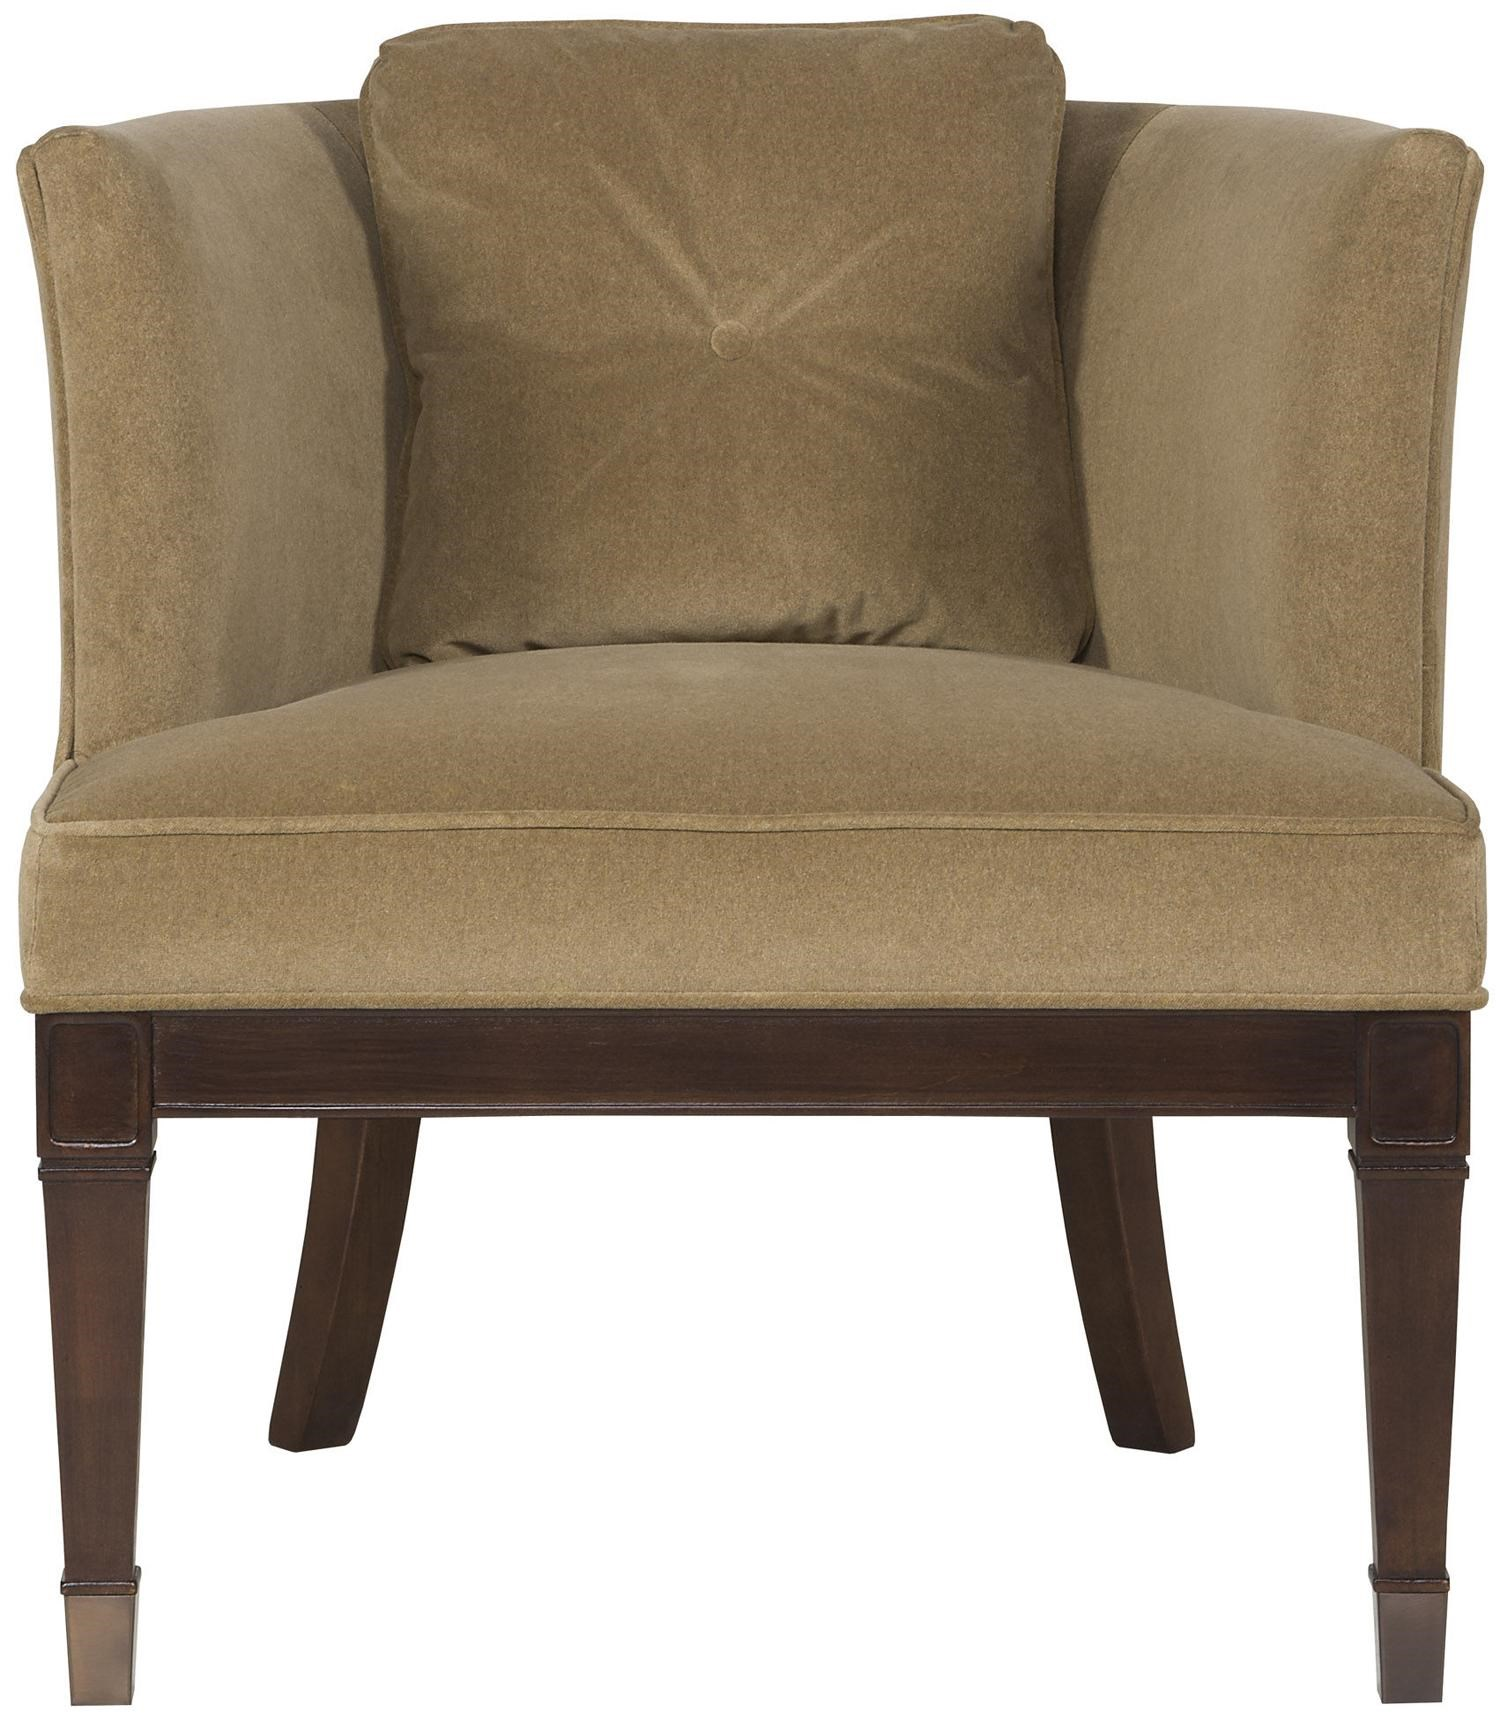 Charmant Vanguard Furniture Accent ChairsChair ...